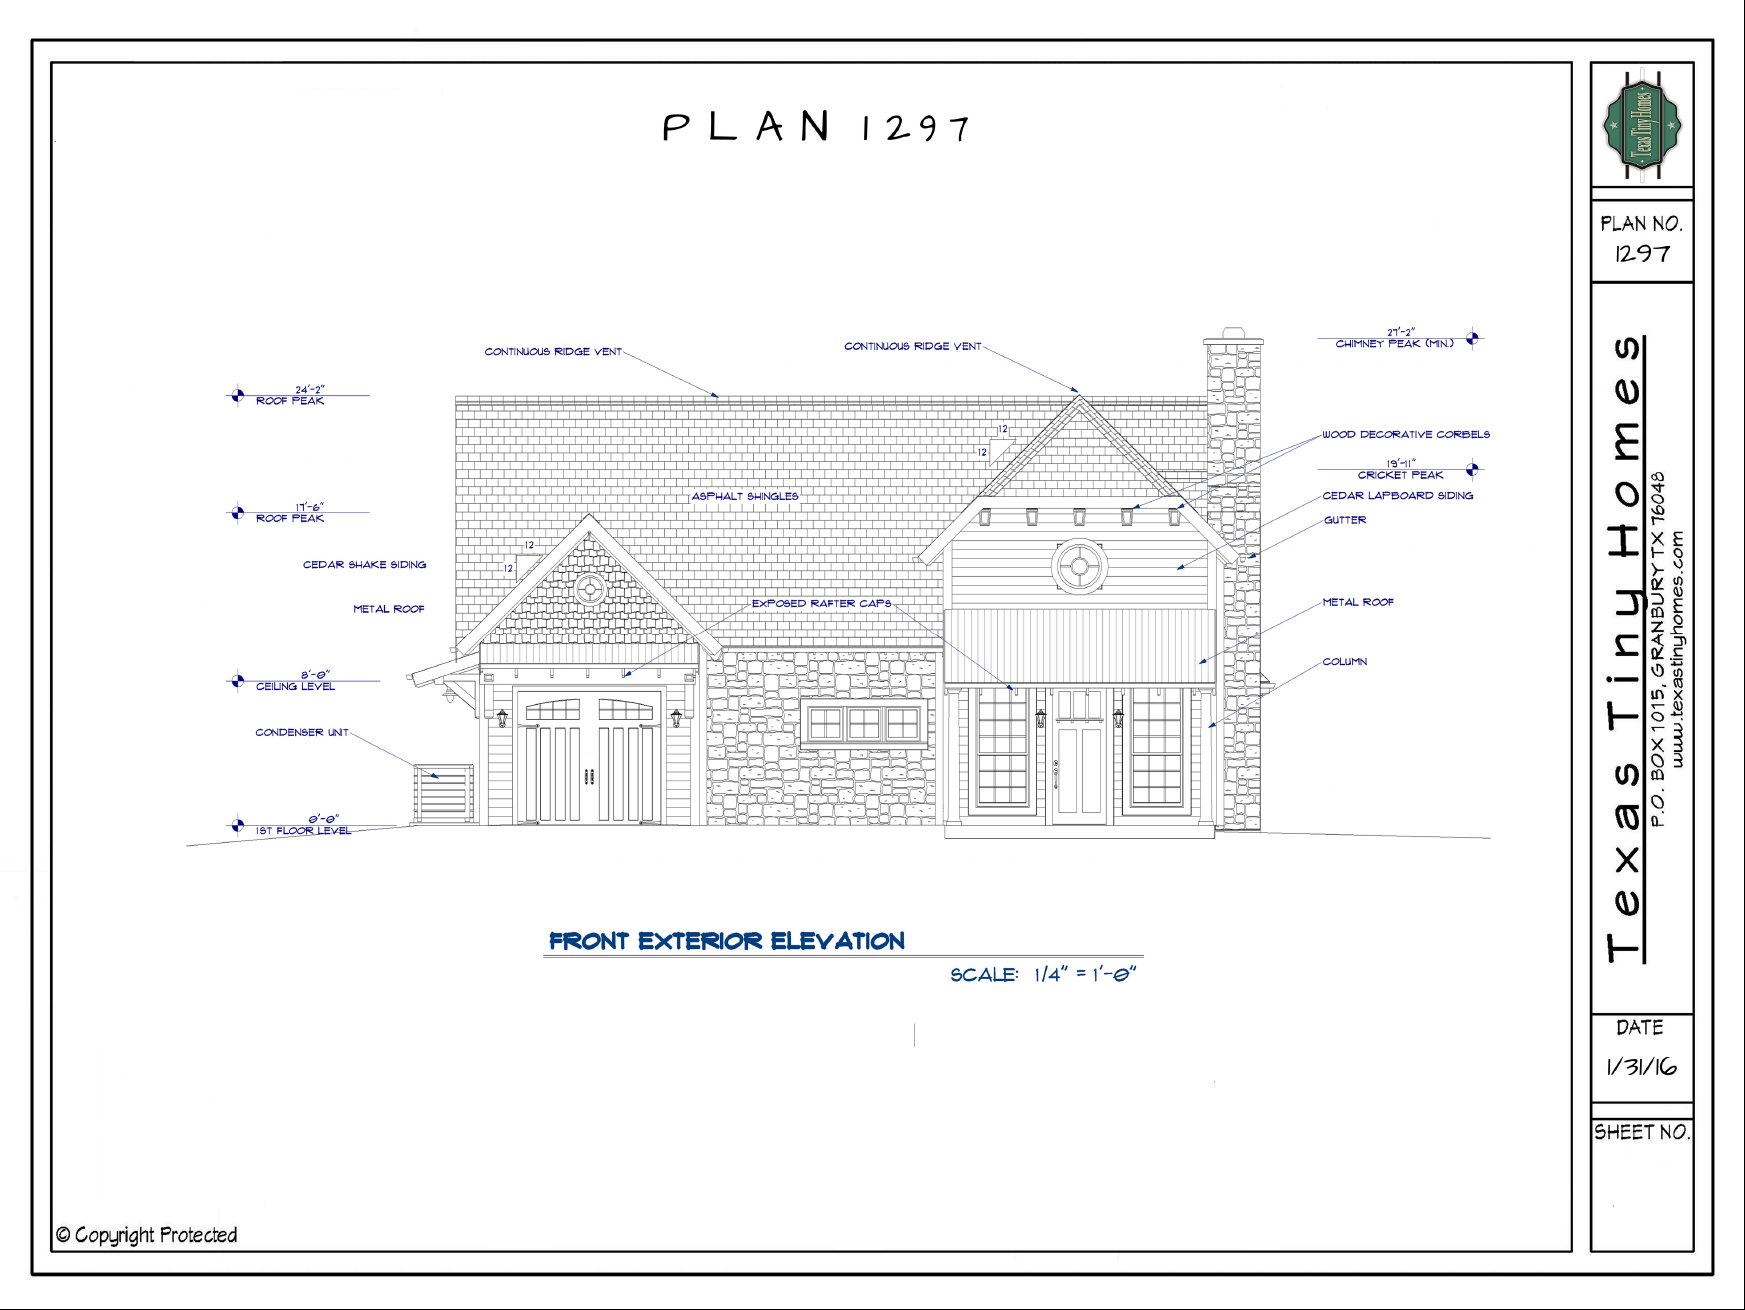 Front Elevation Sheets : Texas tiny homes plan